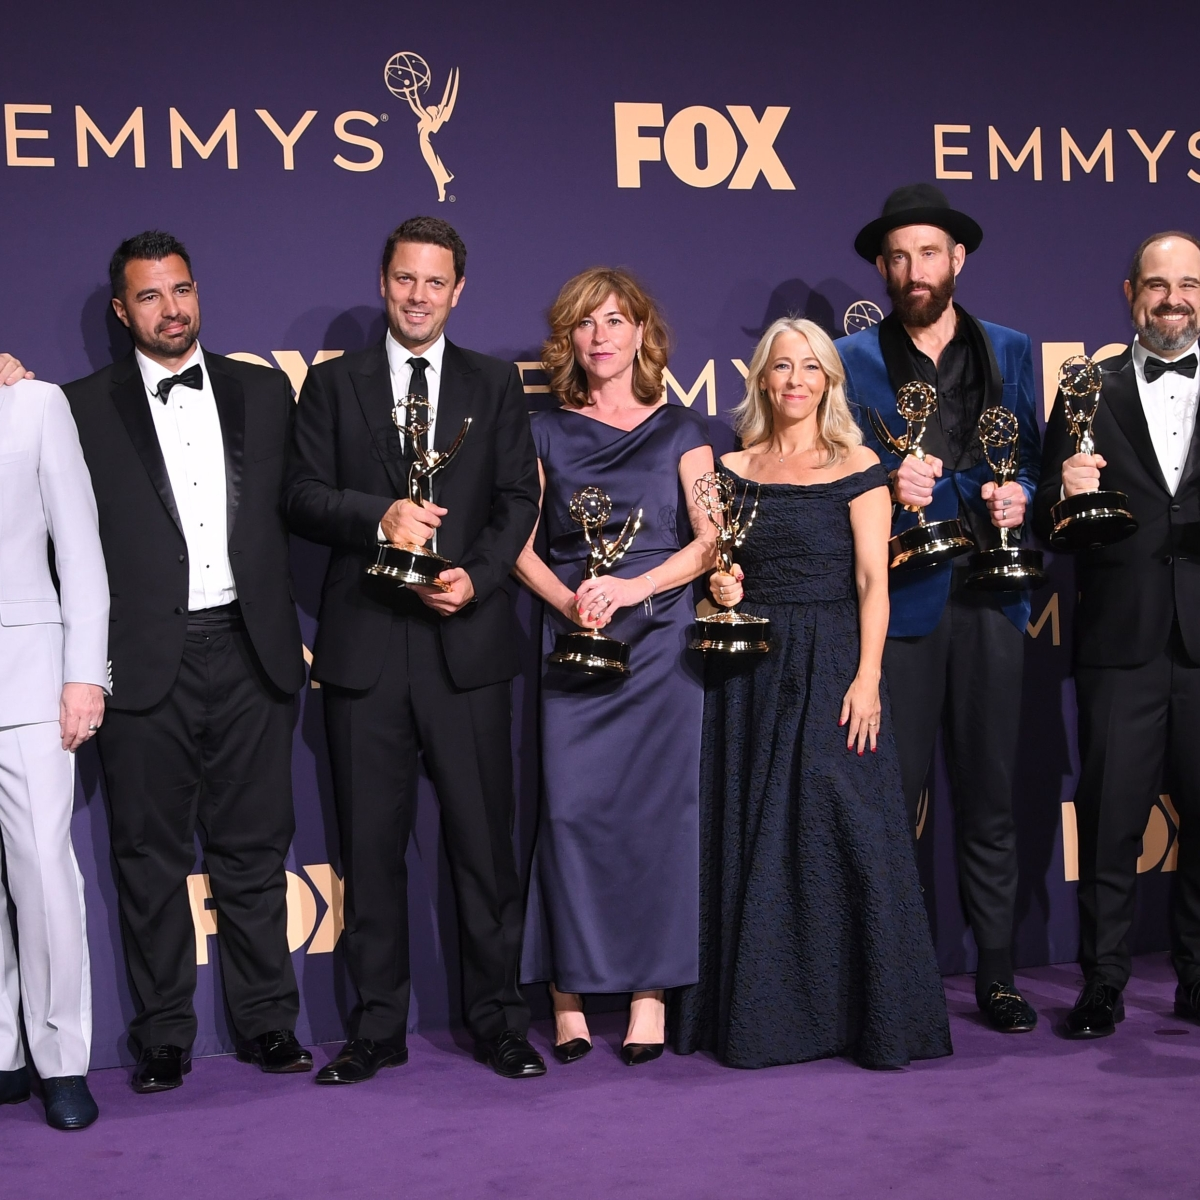 'Chernobyl' wins Outstanding Limited Series at Emmy Awards 2019